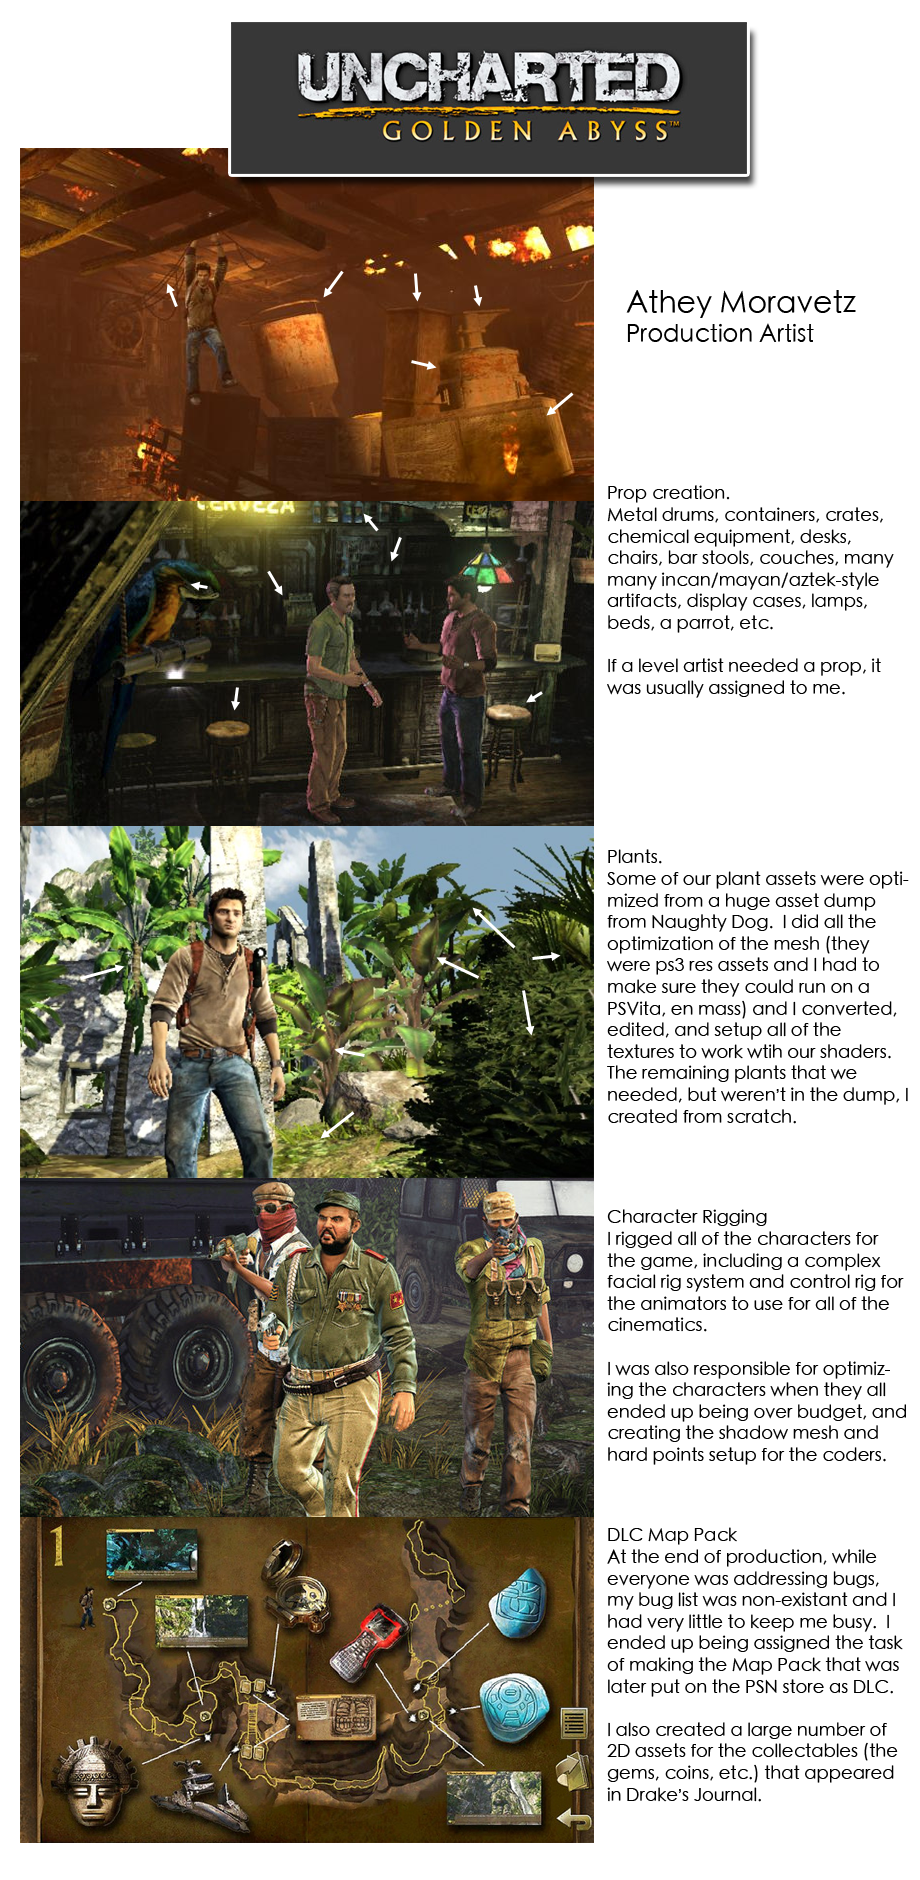 Uncharted Golden Abyss Resume Sample Sheet Page by Athey